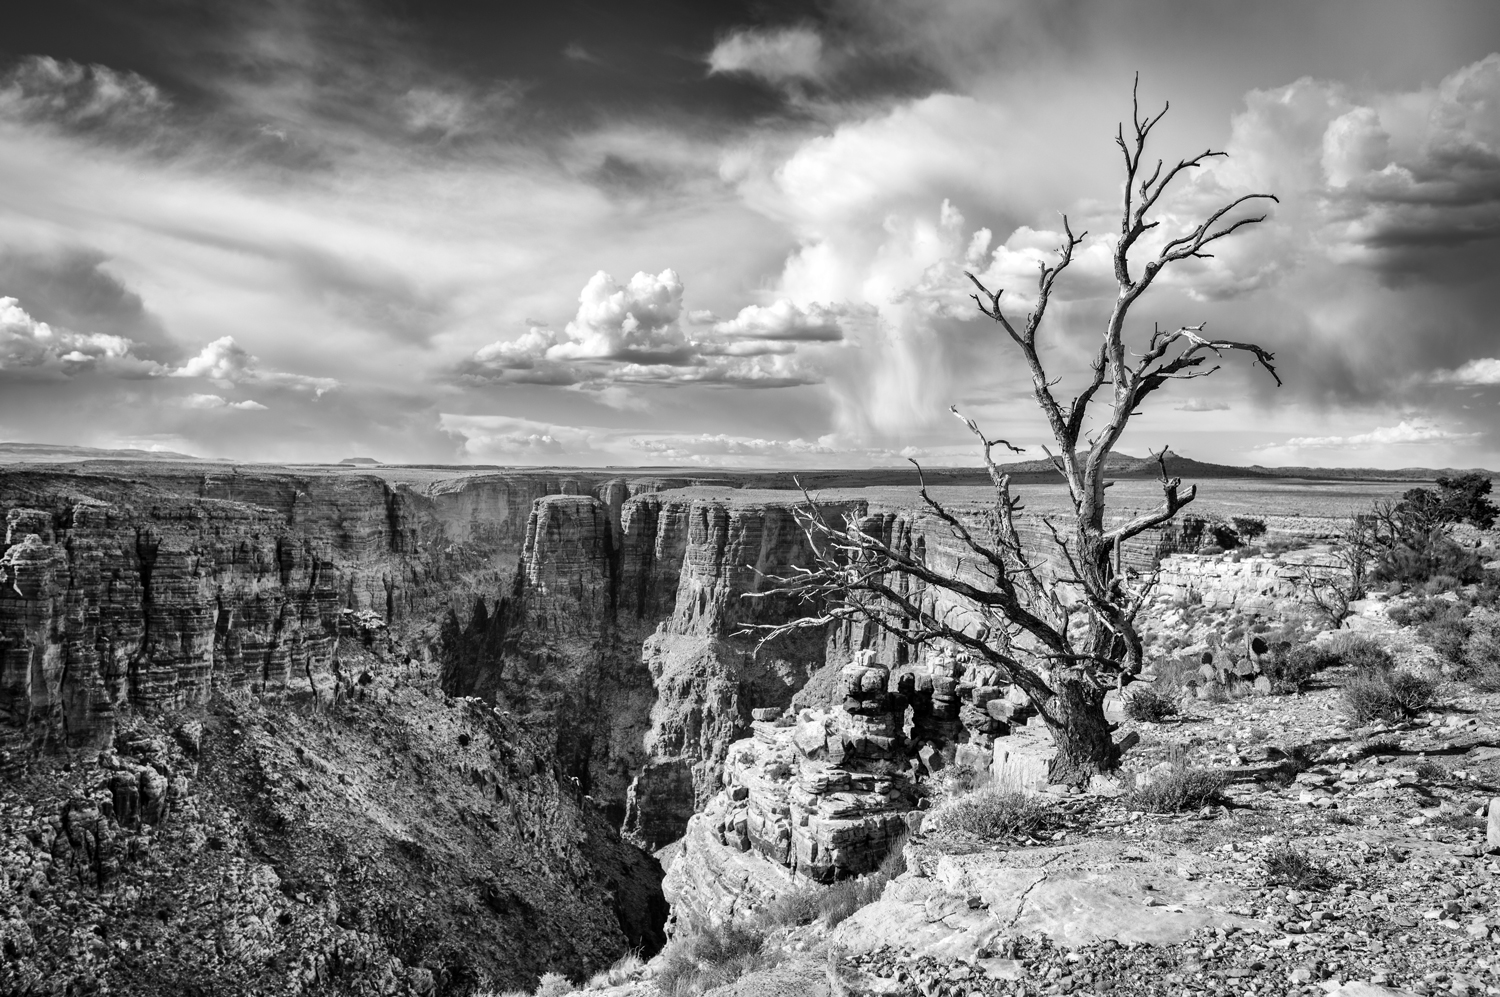 And then the earth cracked open …. Arizona